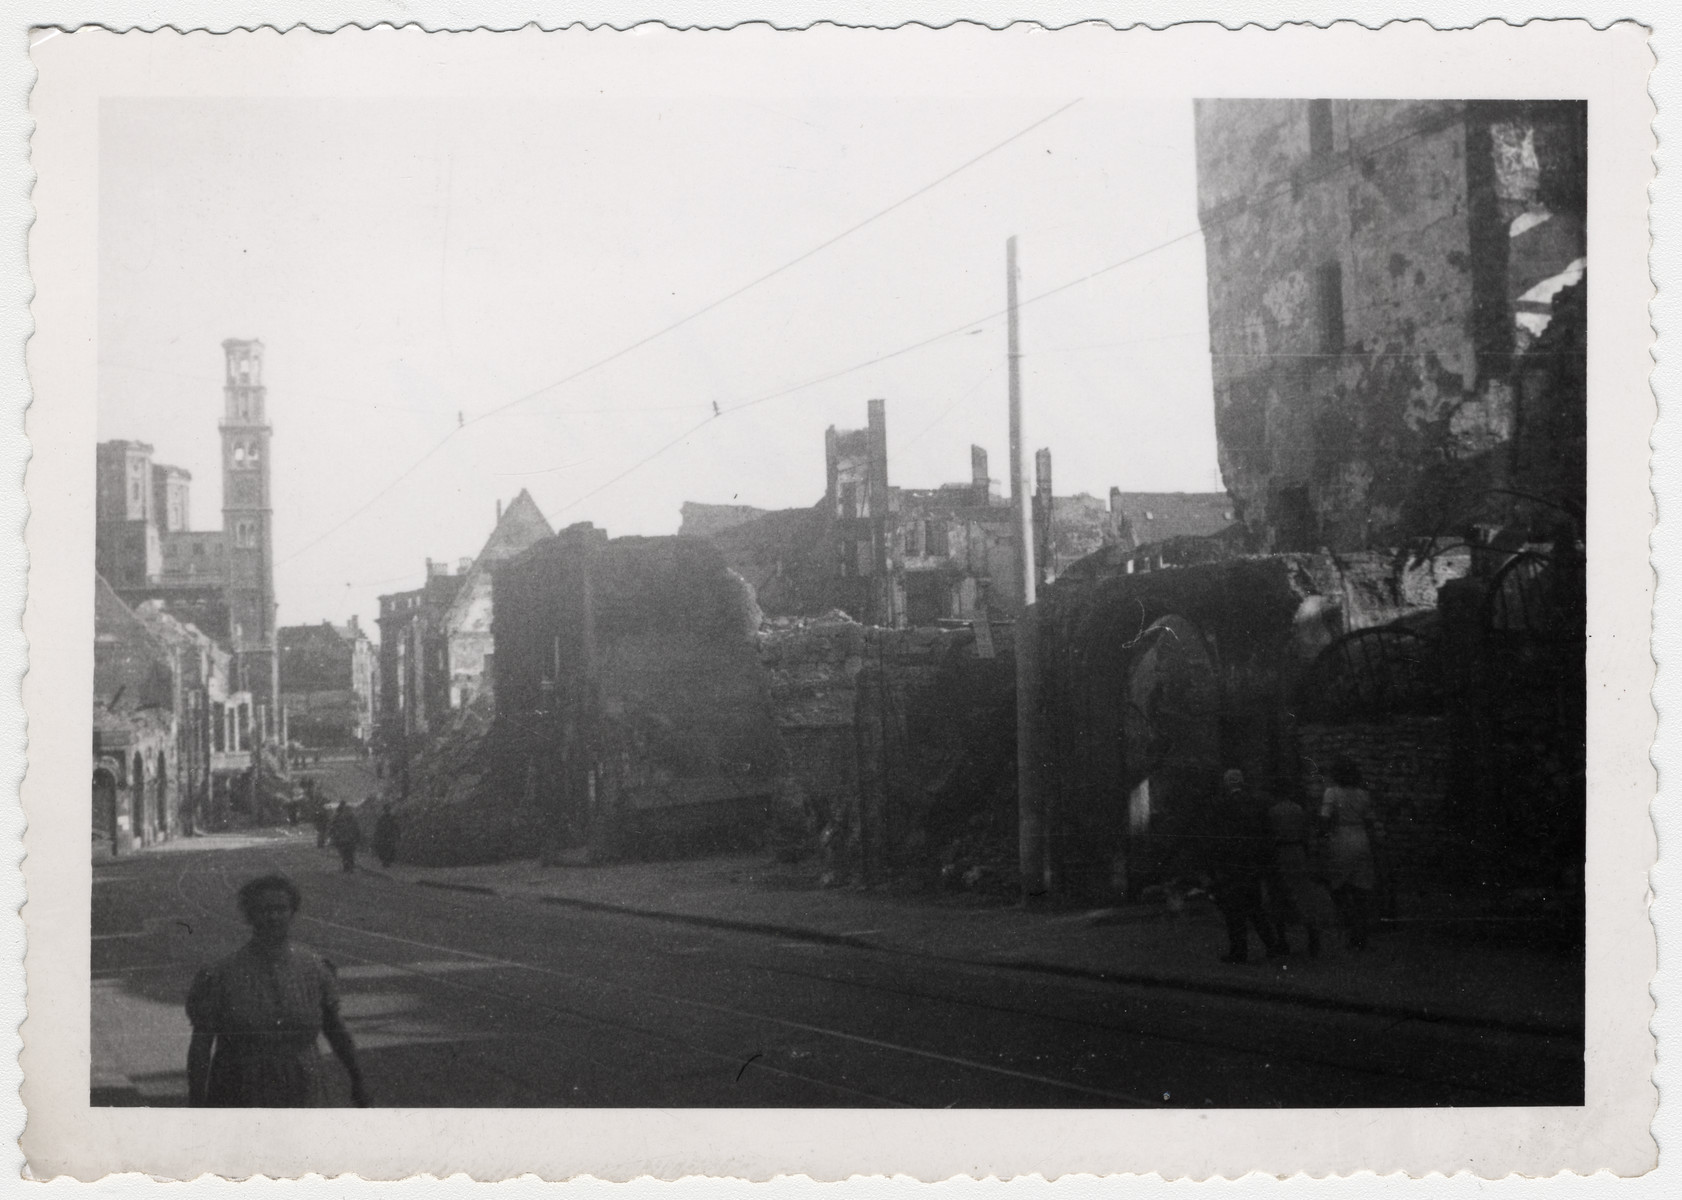 View of a bombed out street in Augsburg, Germany.